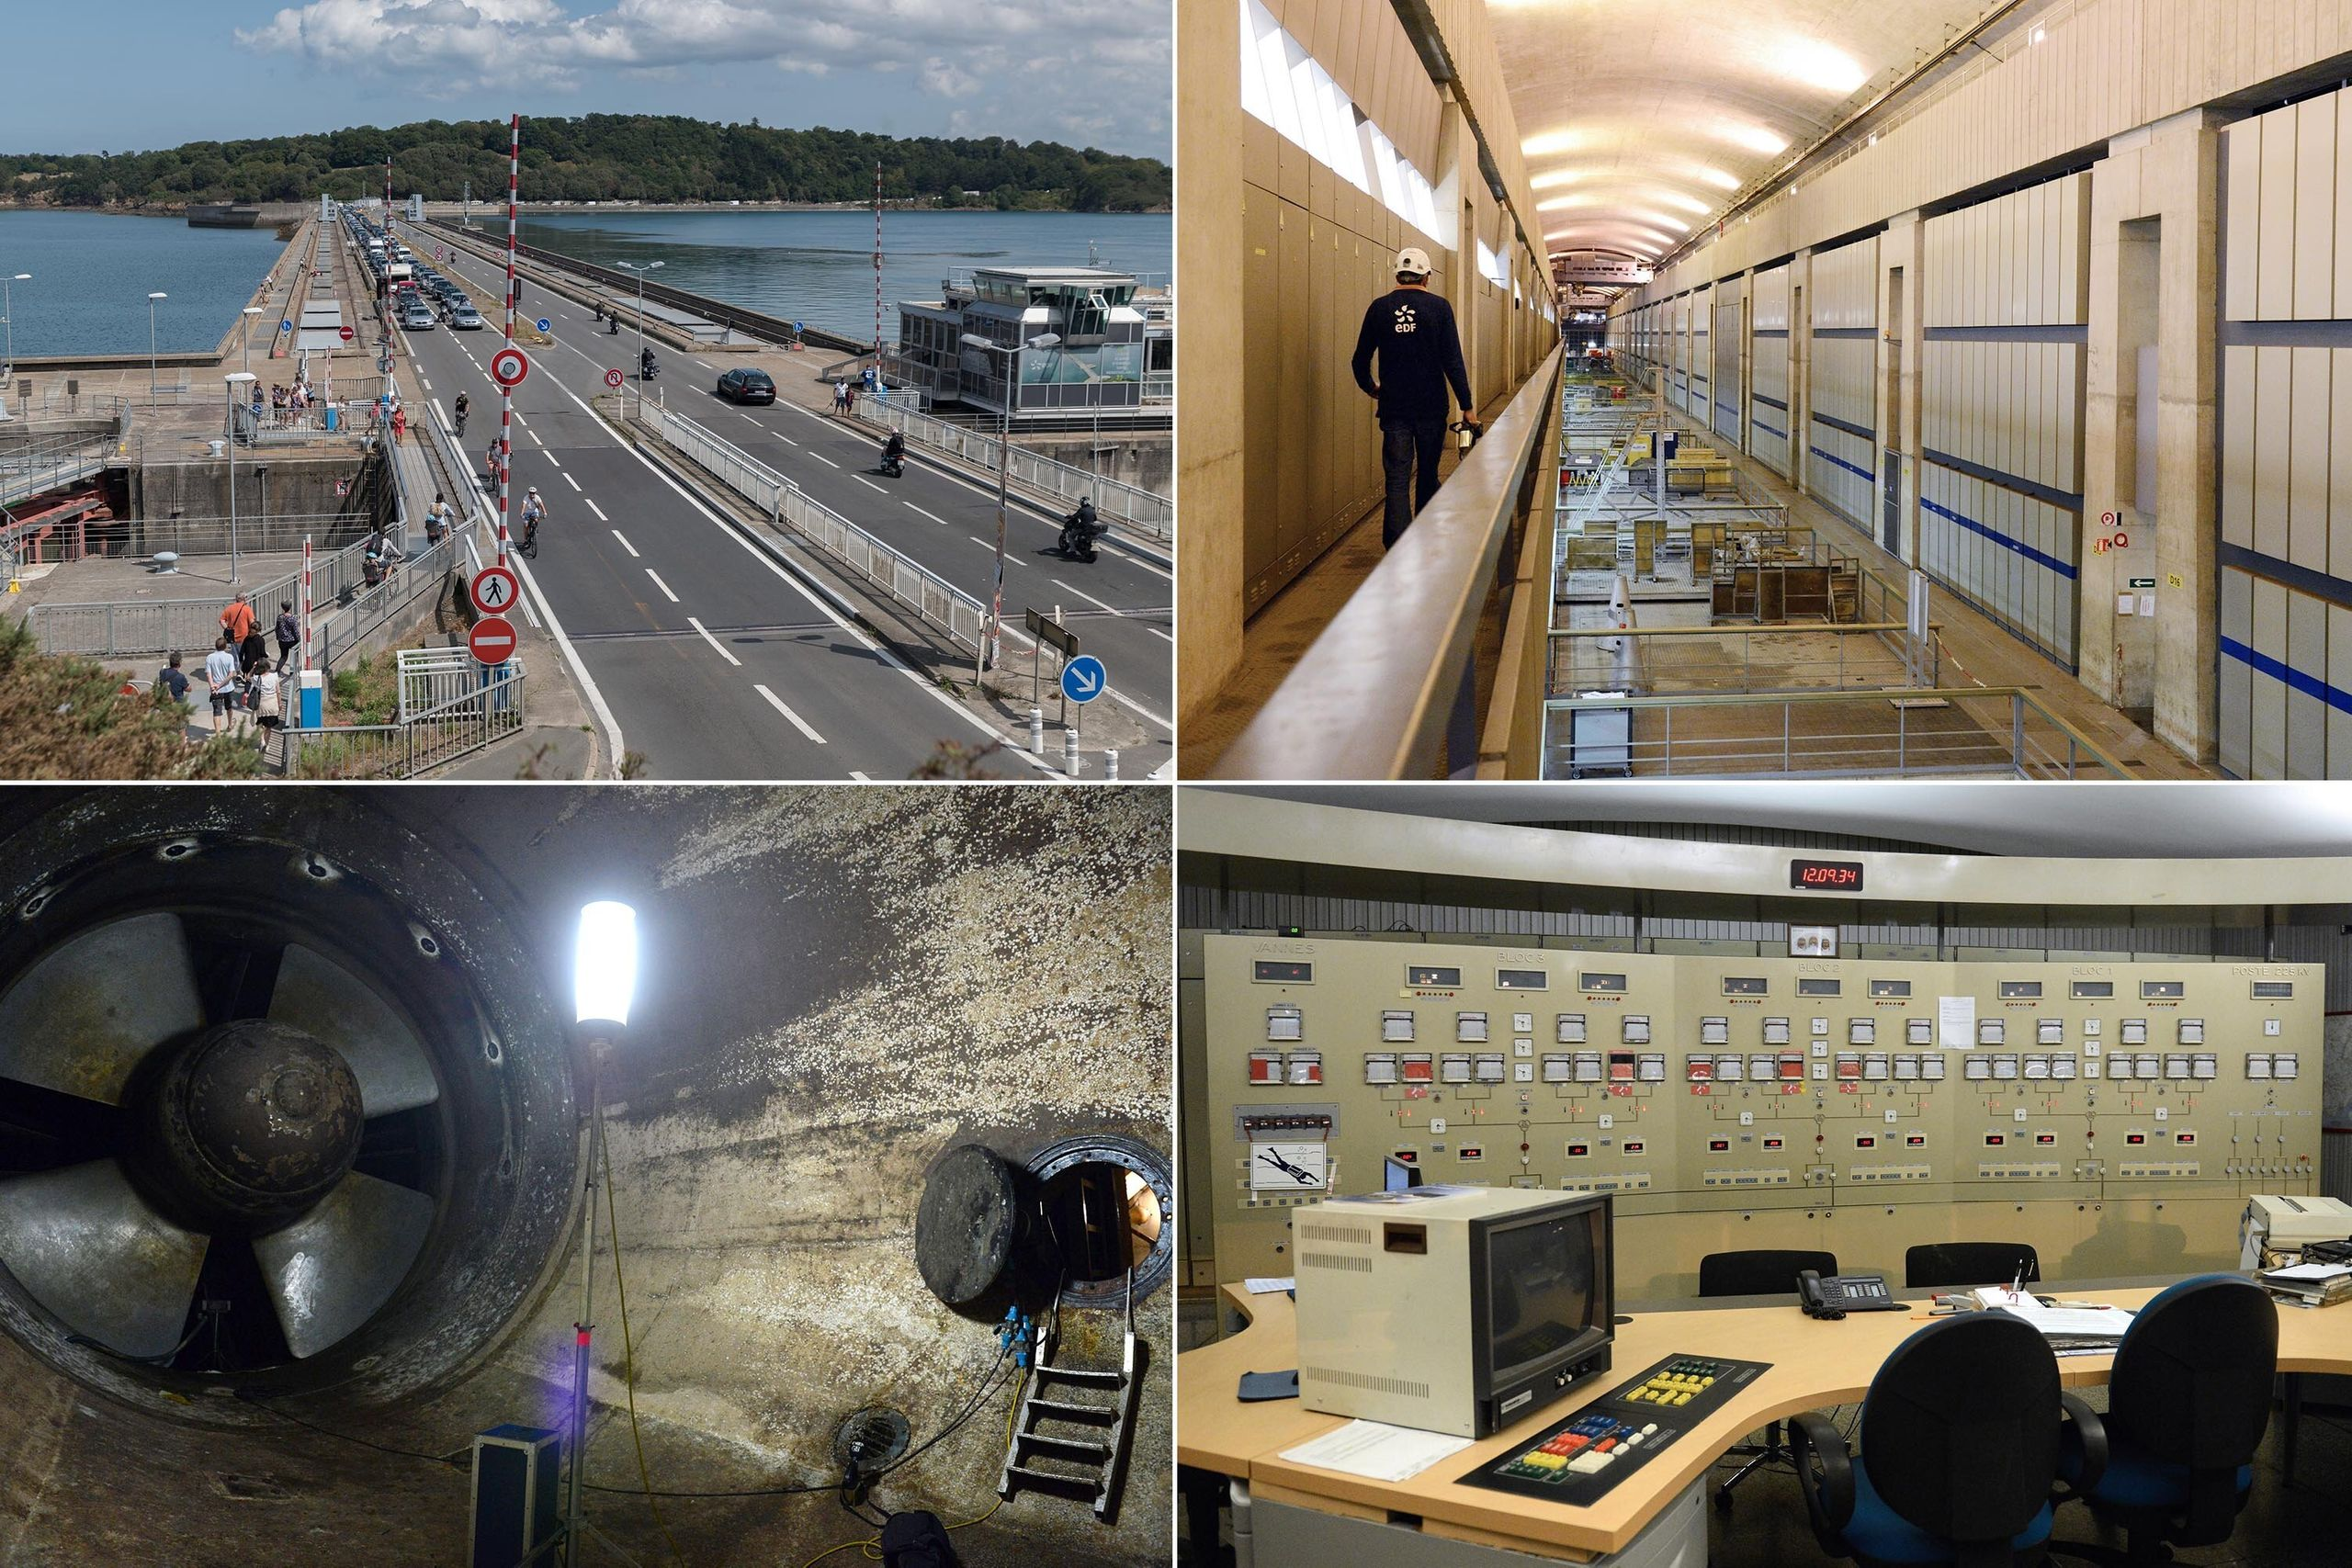 Top left: View of the hydroelectric dam of Rance Brittany, France, in 2019. This hydroelectric plant with tidal energy built